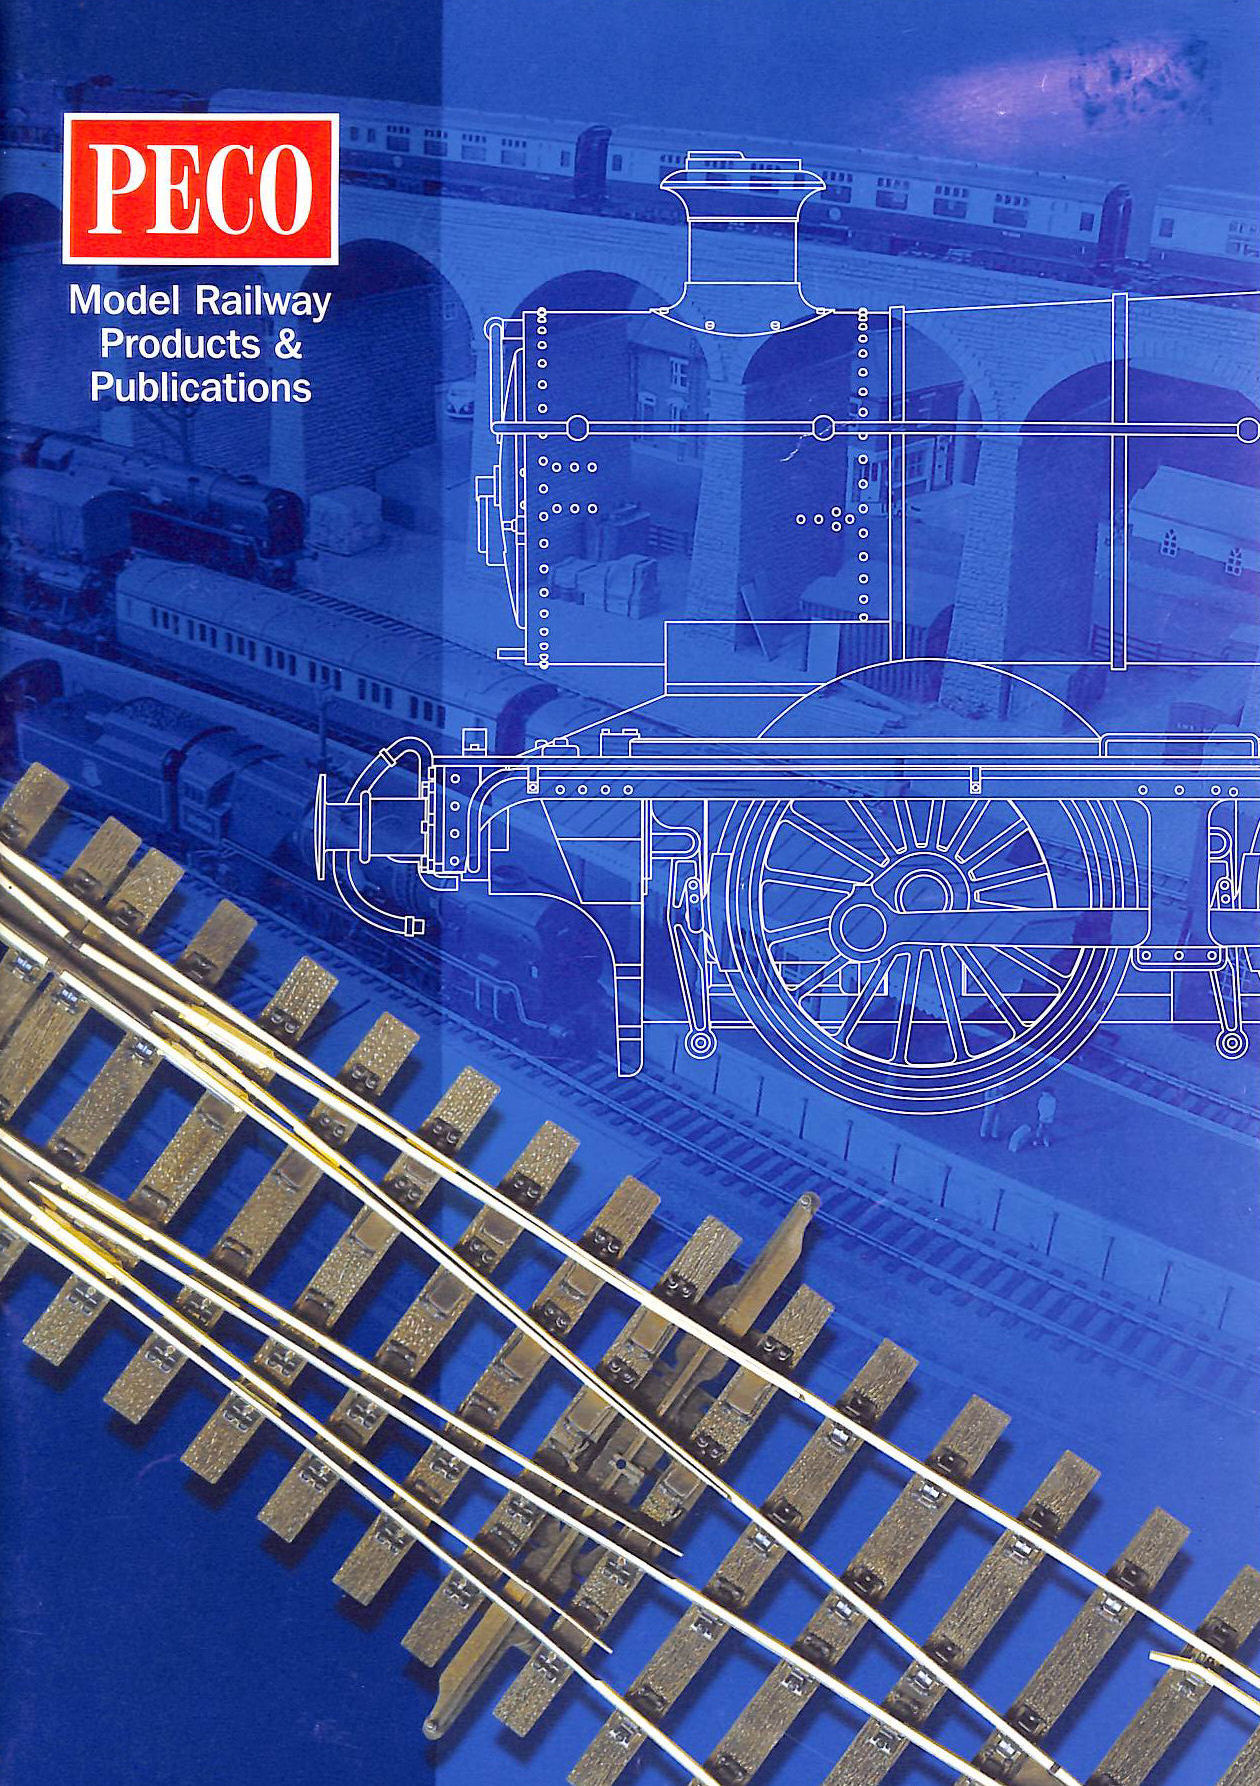 Image for PECO Model Railway Products and Publications 2007 catalogue